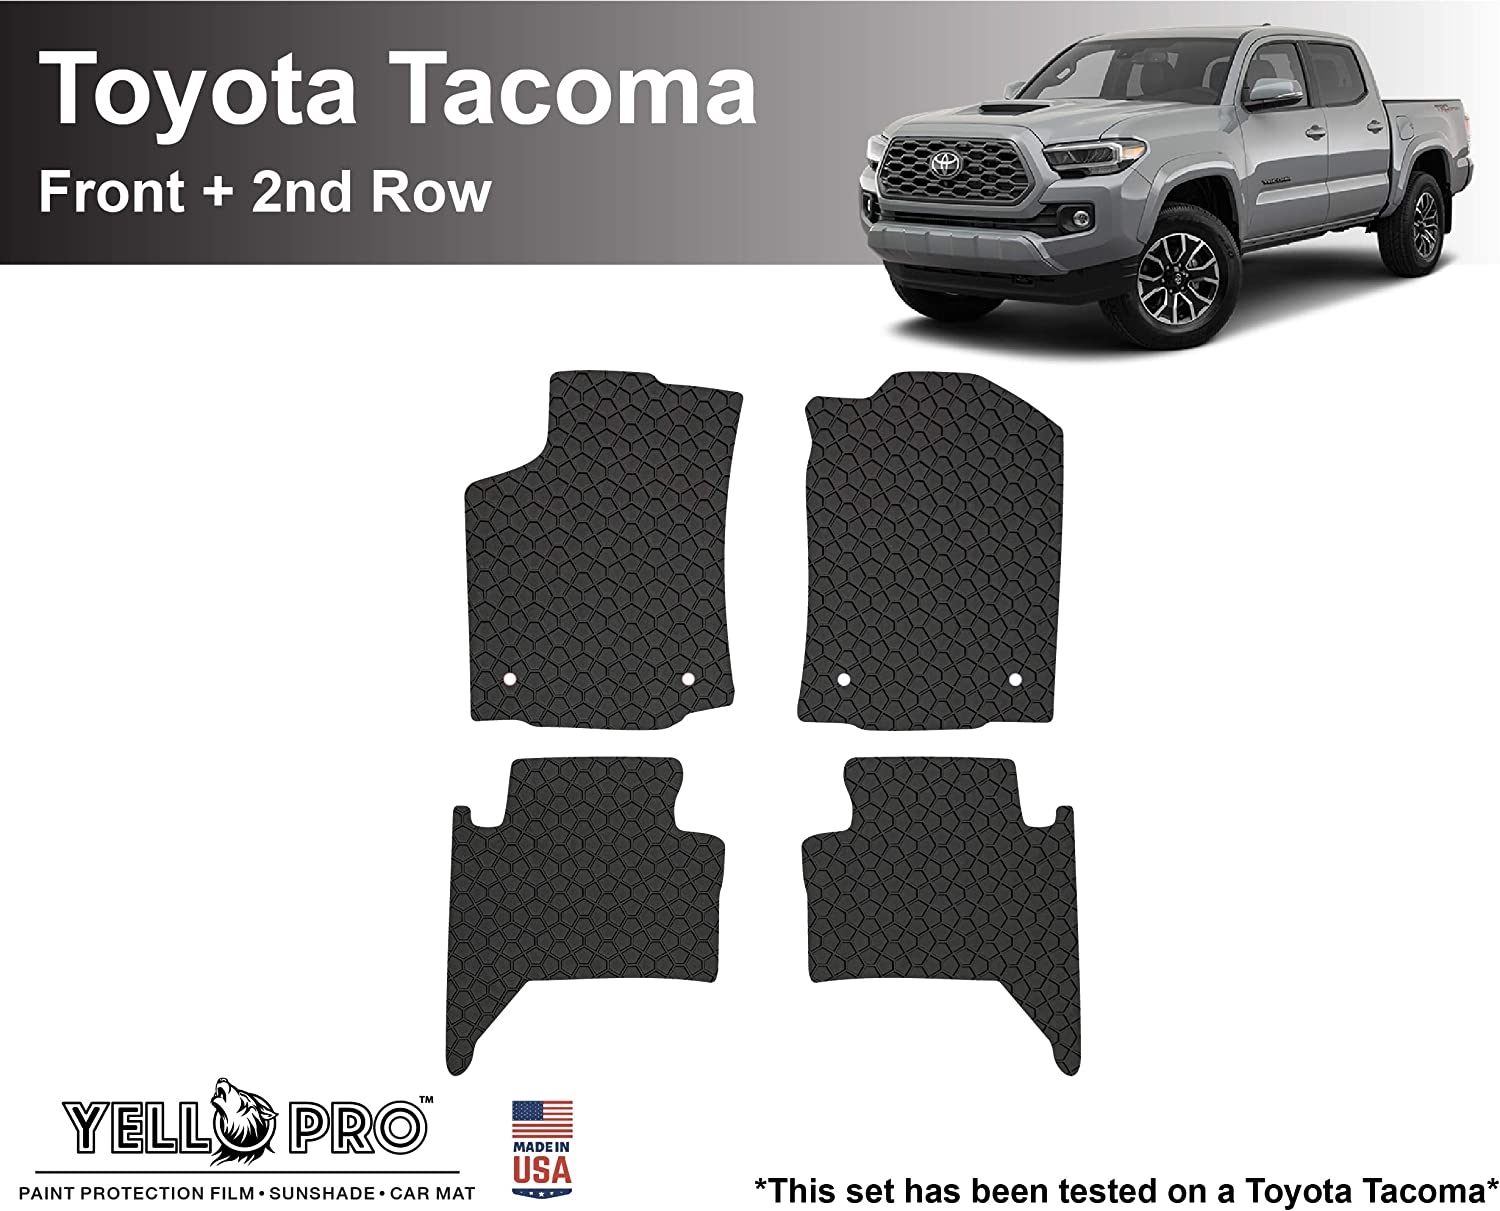 4pcs YelloPro Auto Custom fit Heavy Duty Car Floor Mat Accessories for 2018 2019 2020 Toyota Tacoma Double Cab All Weather Anti-Slip Black Rubber - Front /& 2nd Row Made in USA